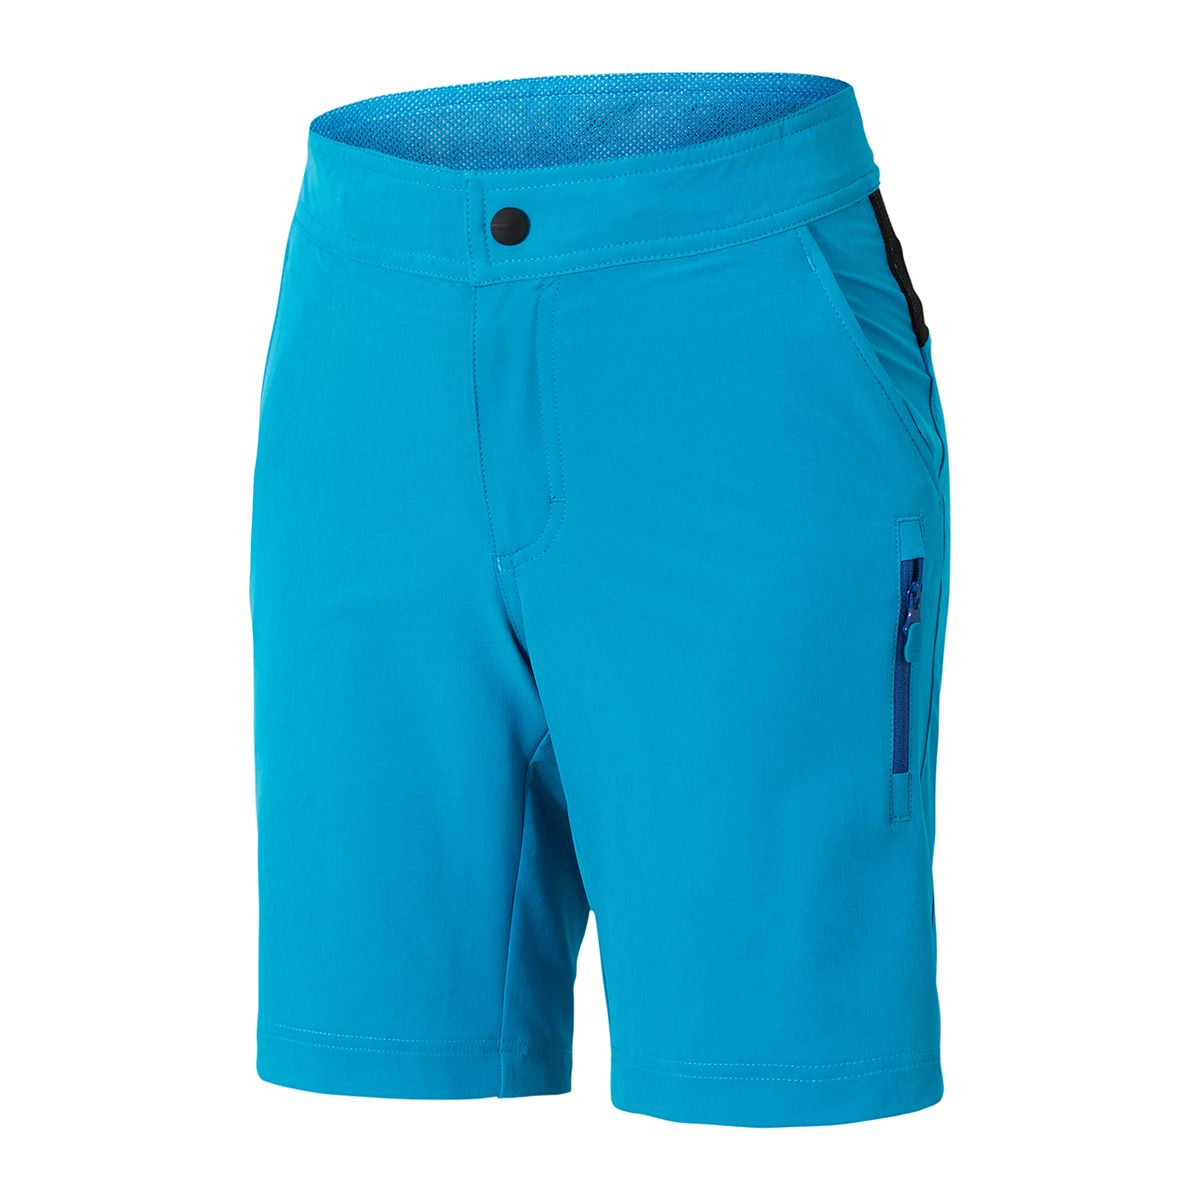 CONGAREE X-FUNCTION children's MTB shorts